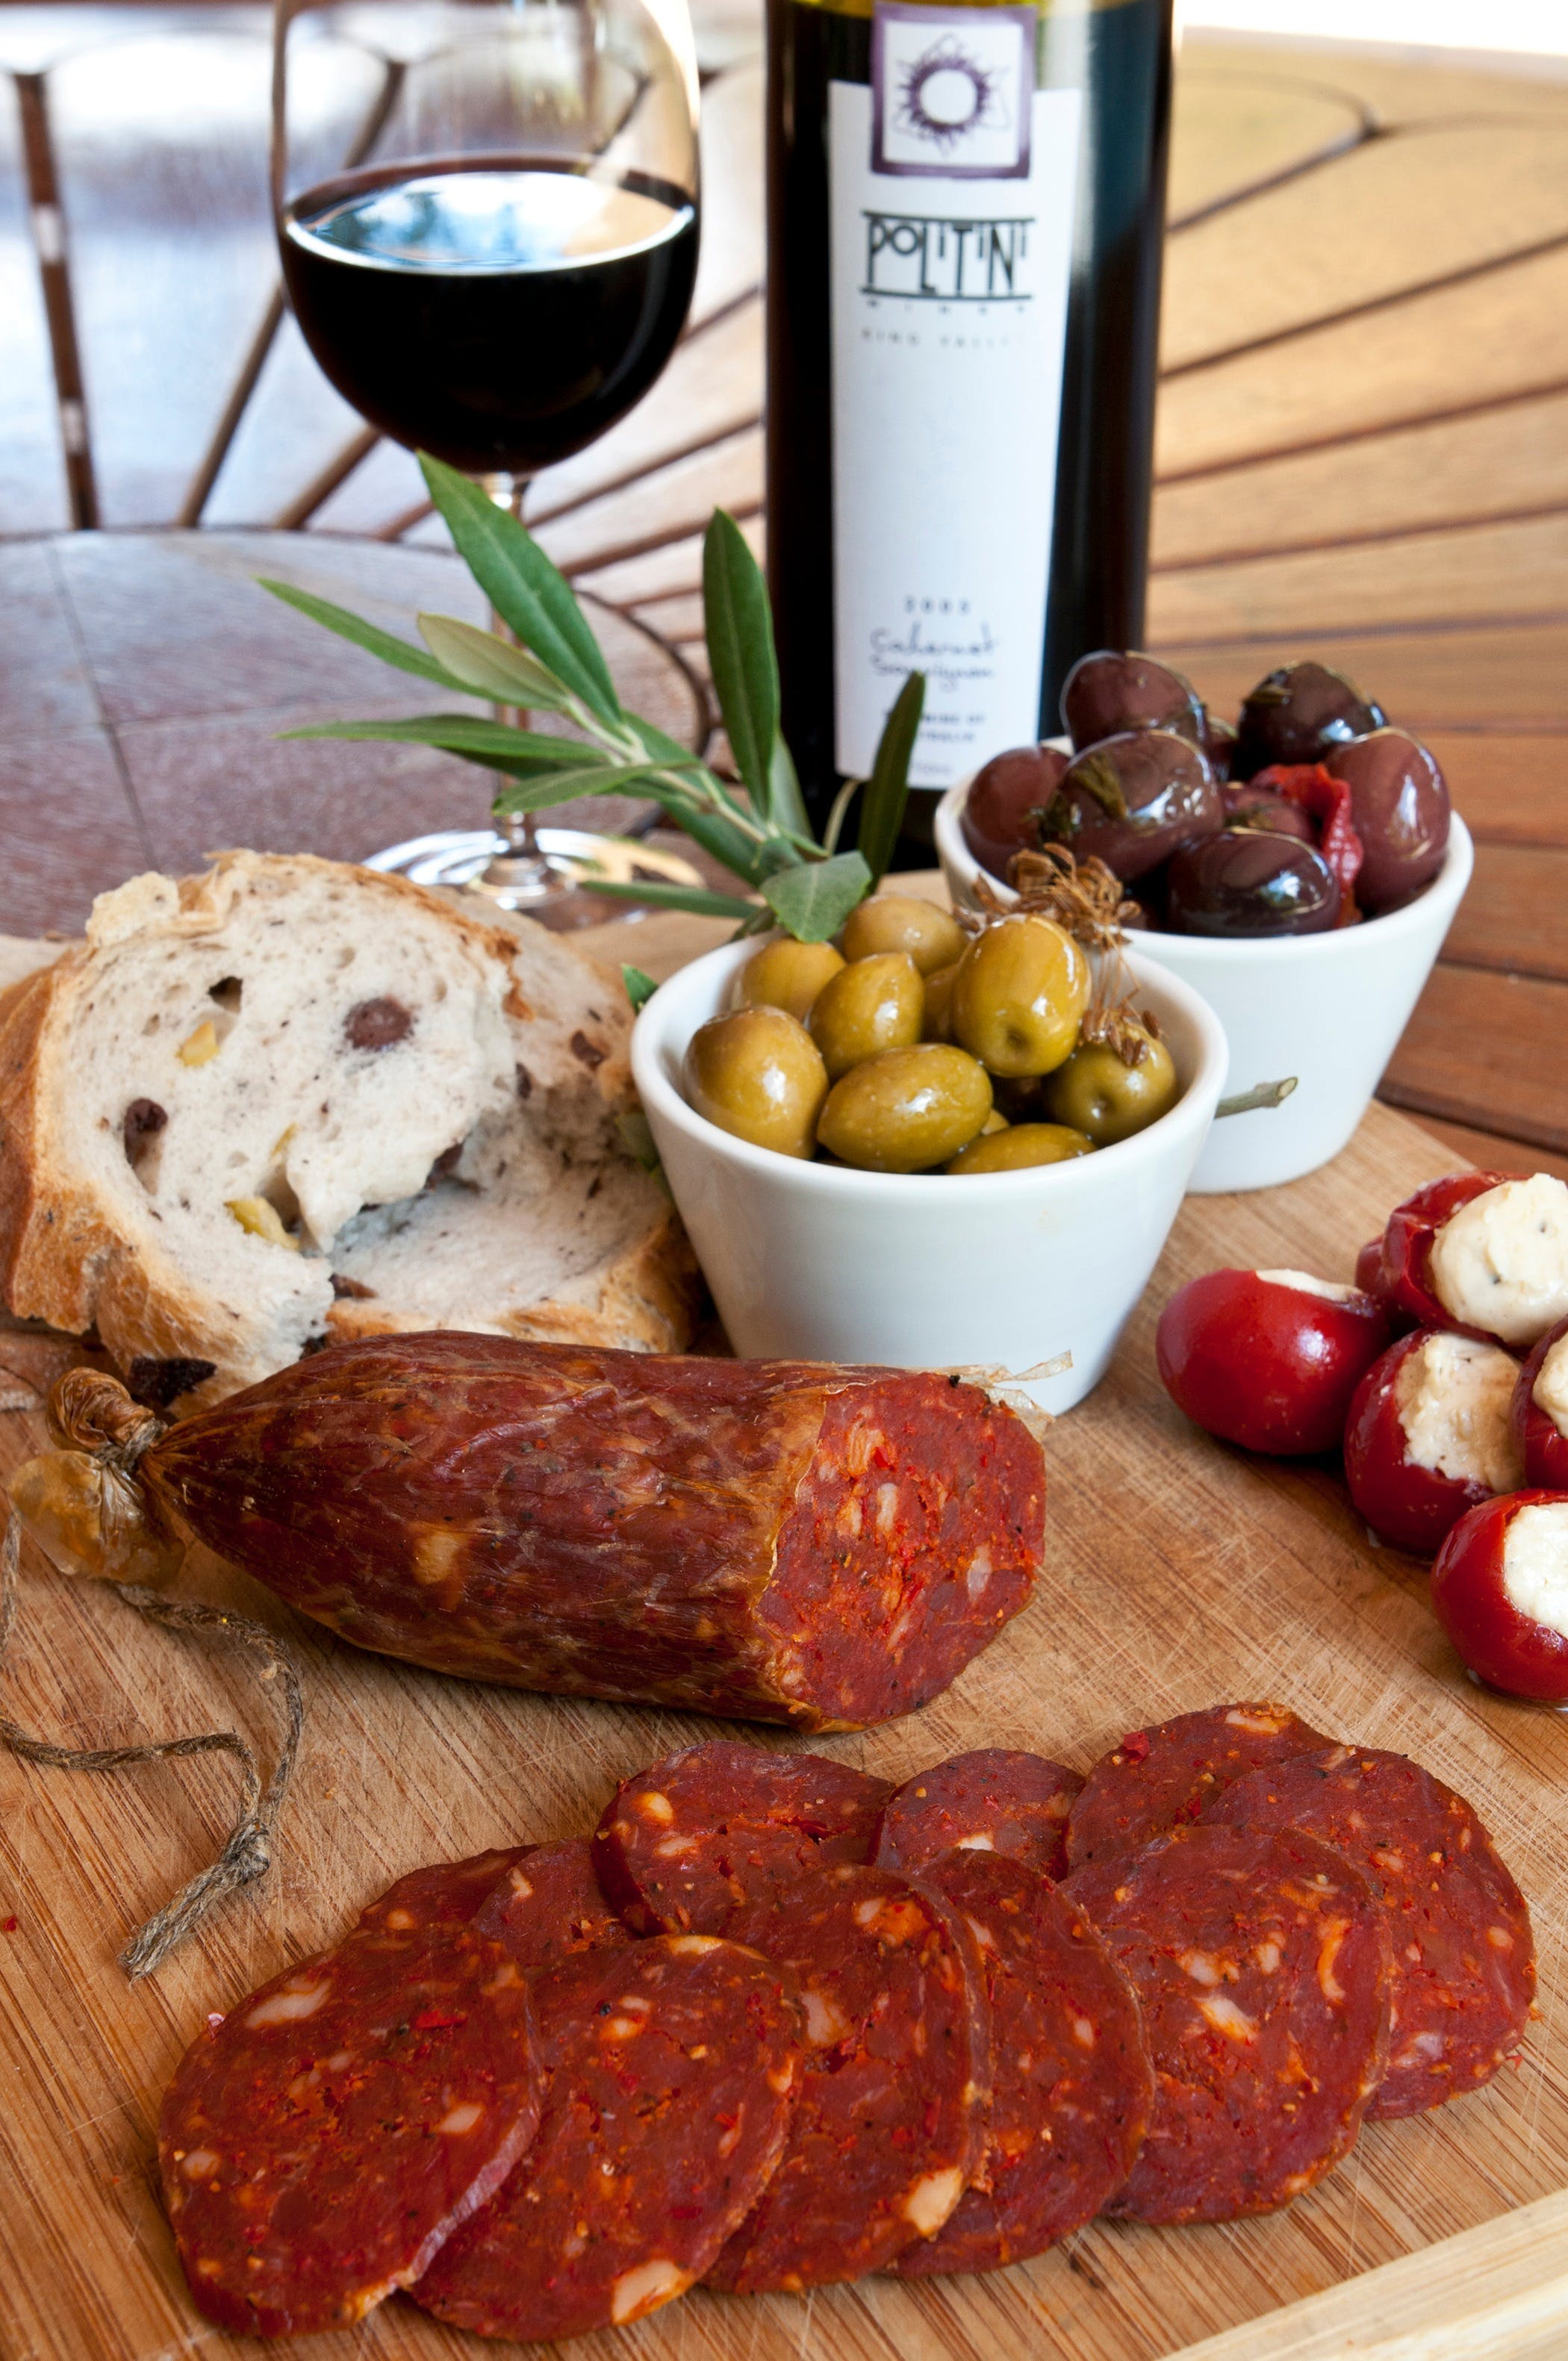 Salami and Salsicce Making classes at Politini Wines - Wagga Wagga Accommodation